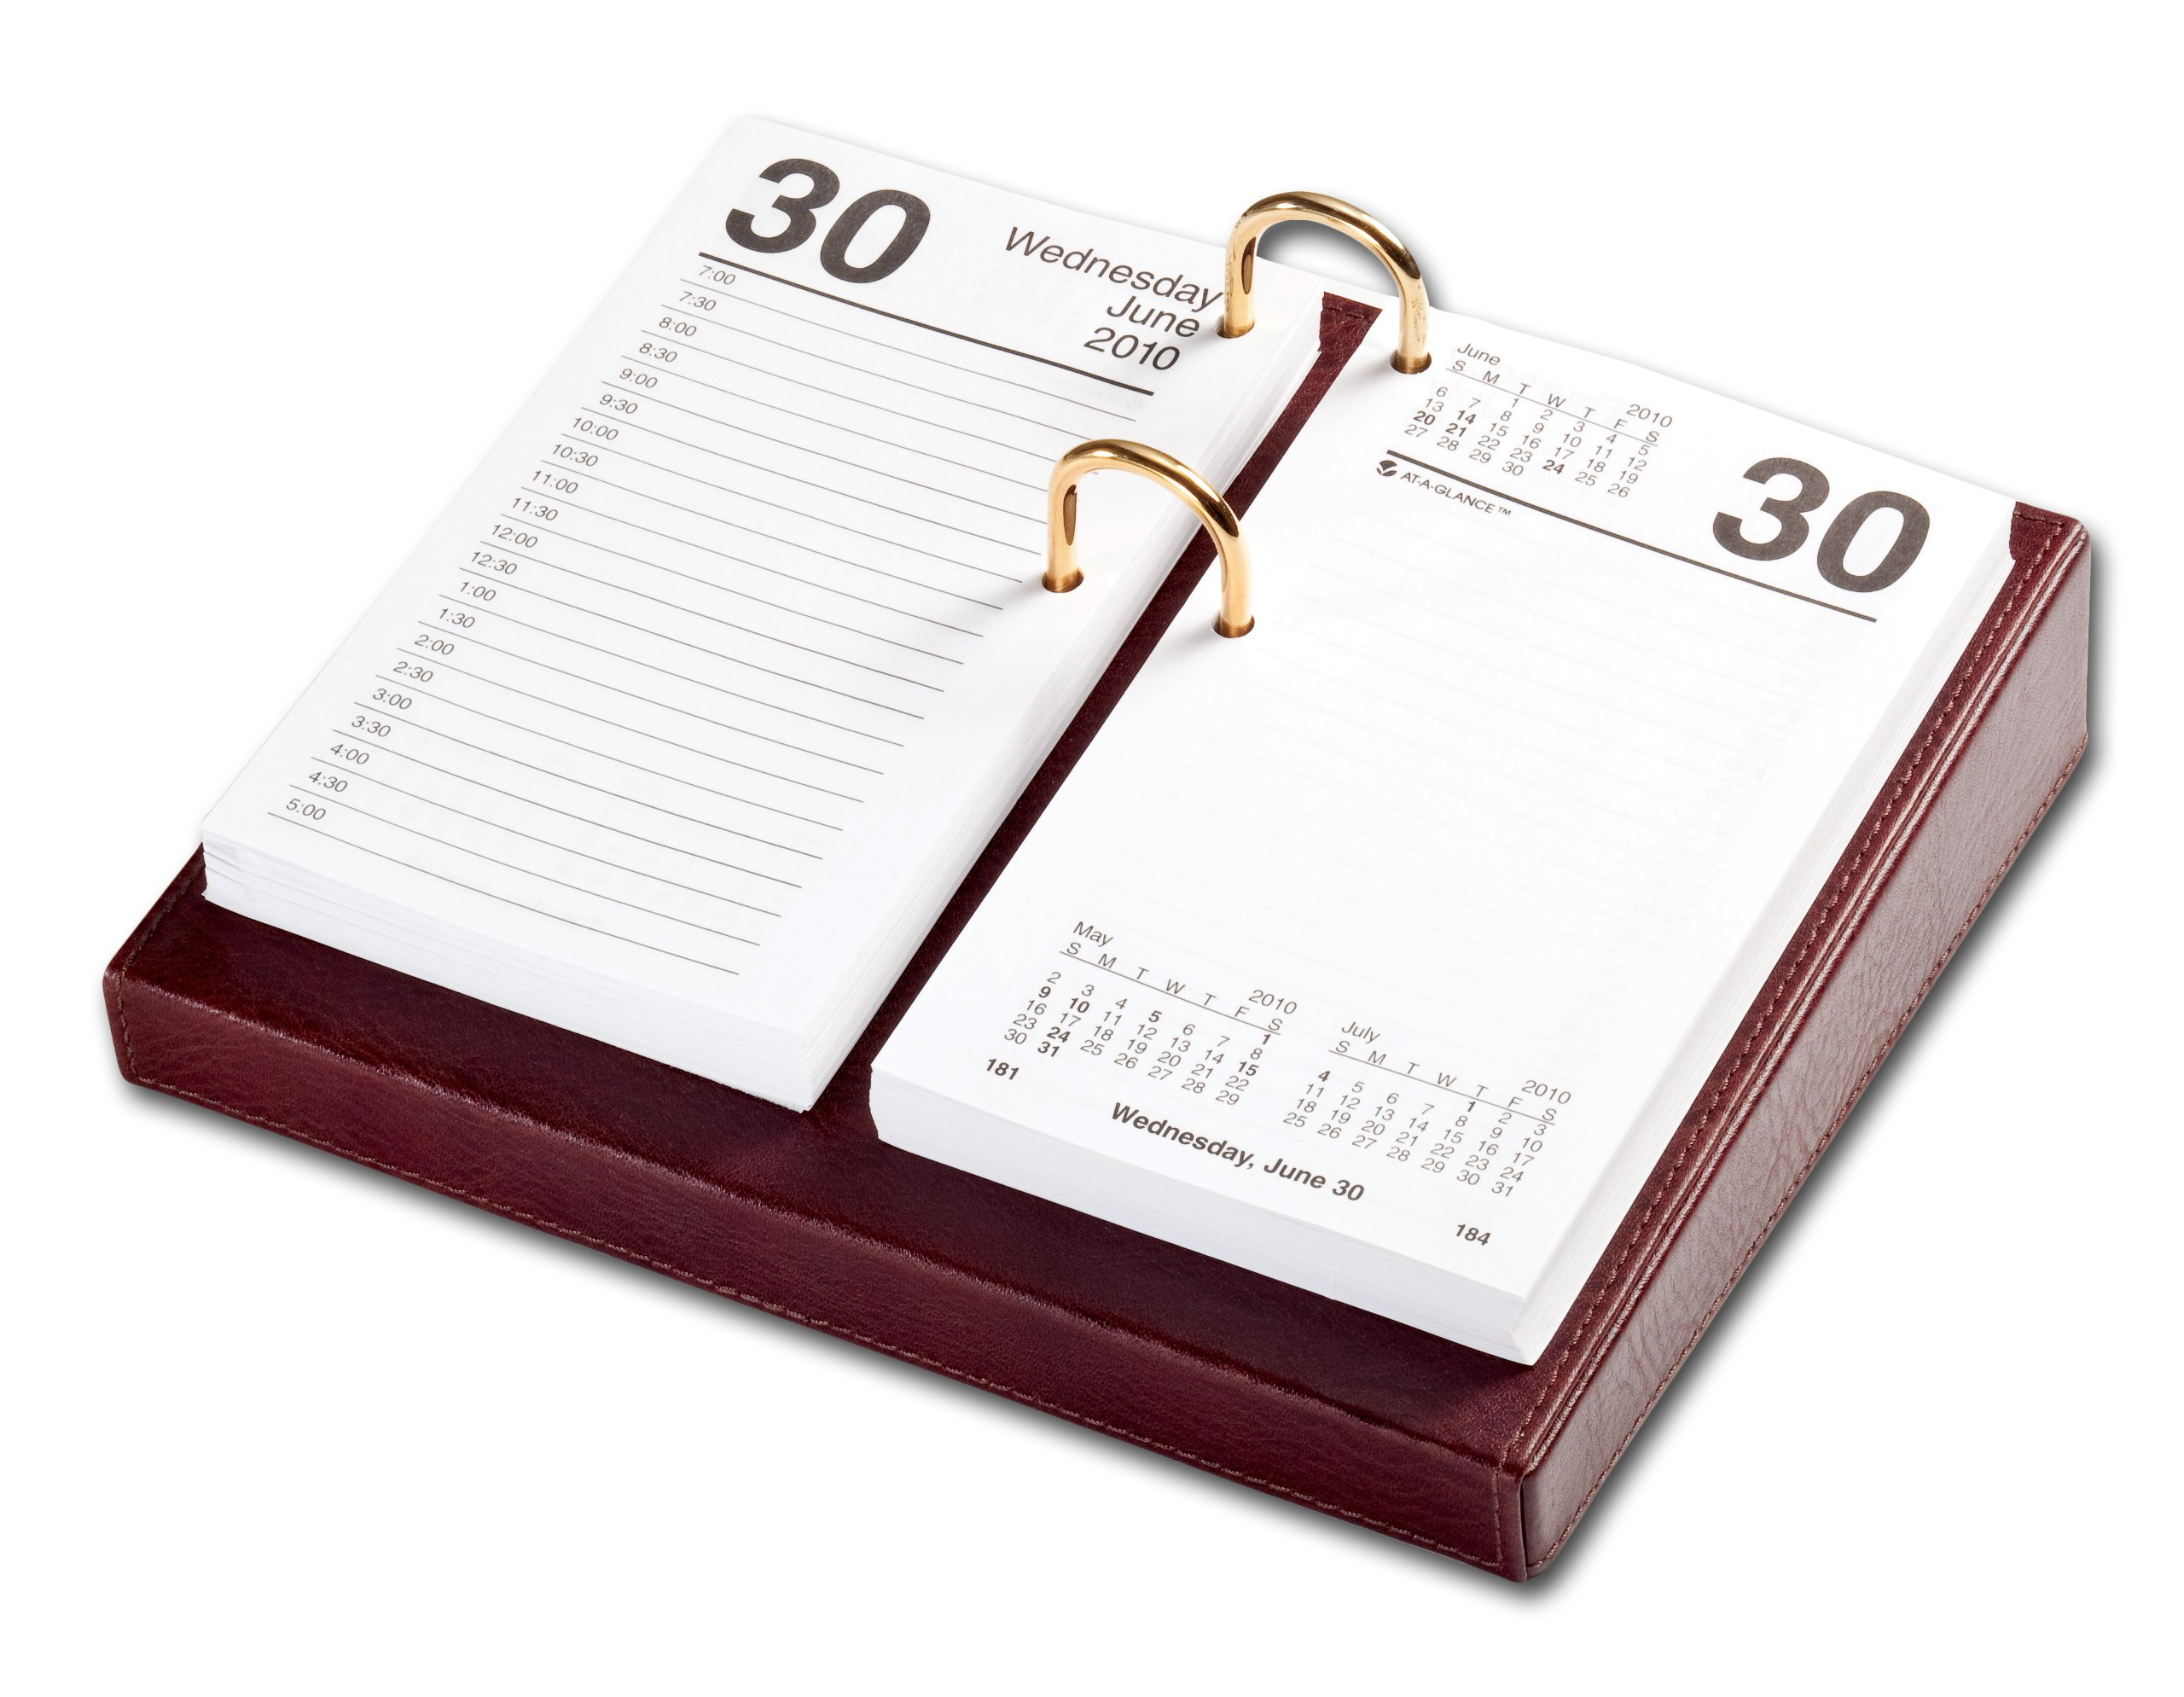 Dacasso Mocha Leather Desktop Calendar Holder with Gold Bolts, 3.5-Inch by 6-Inch by Dacasso